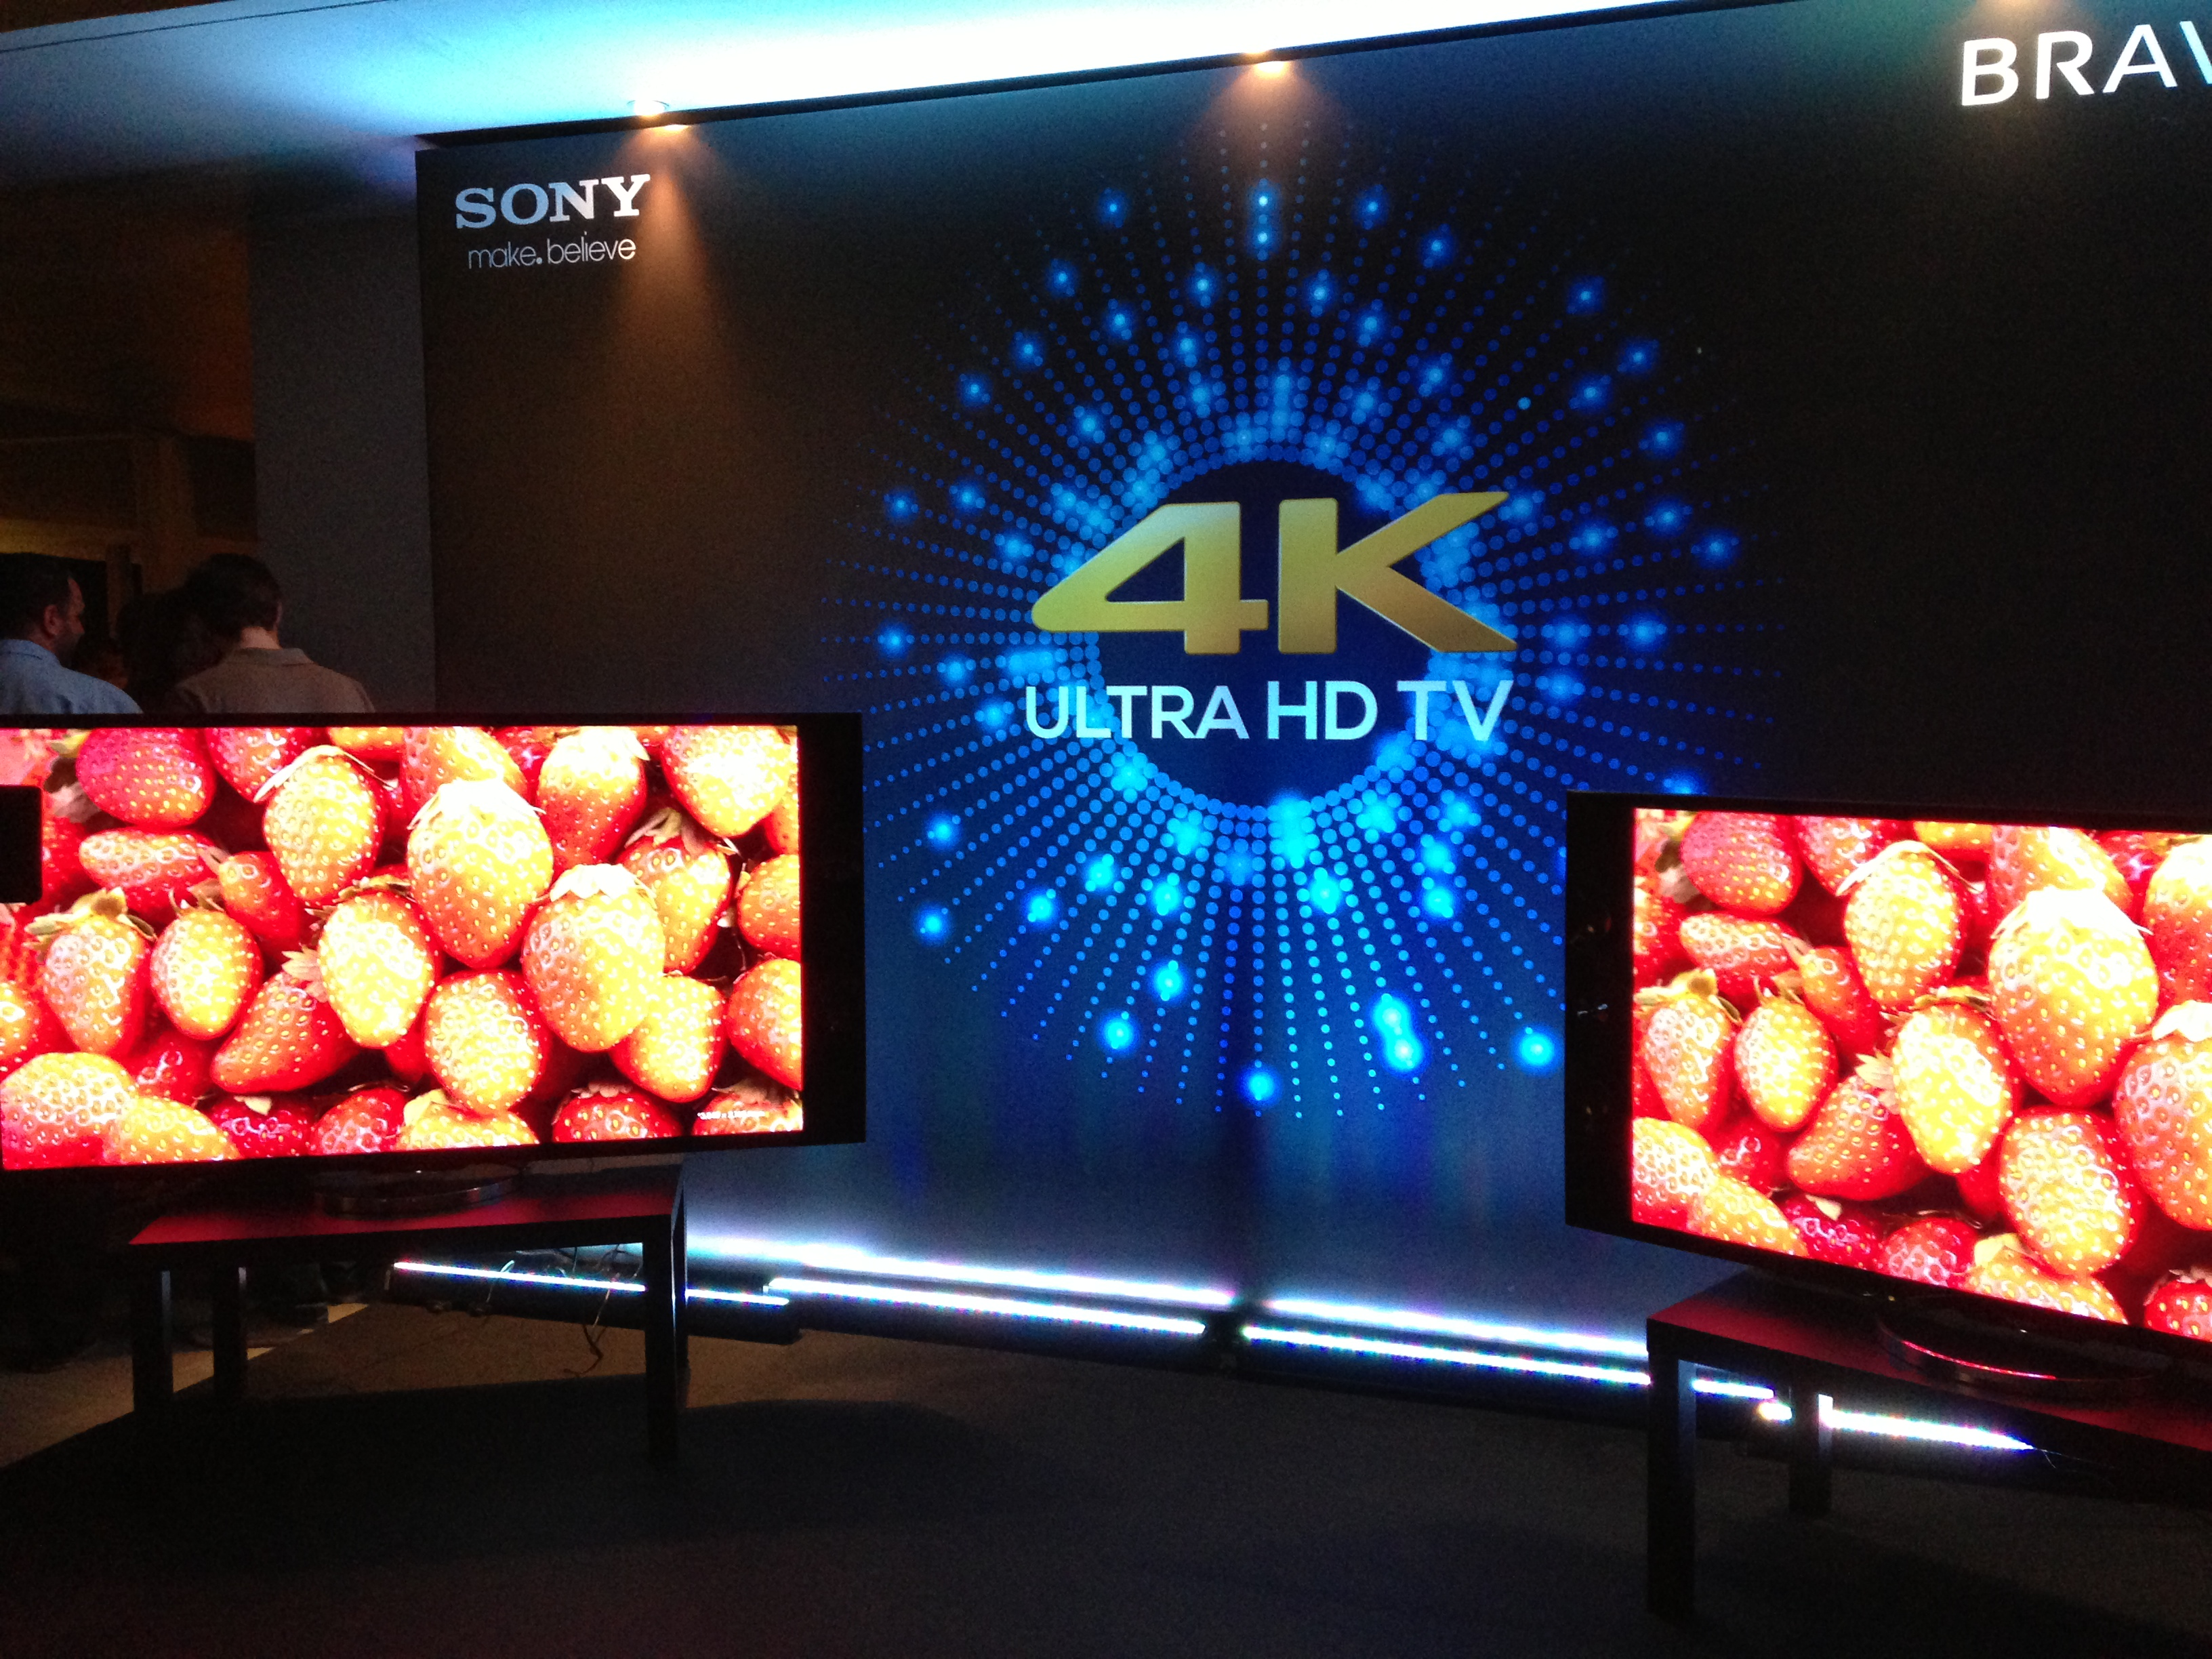 Sony 4K Ultra HD TV event | Flickr - Photo Sharing!